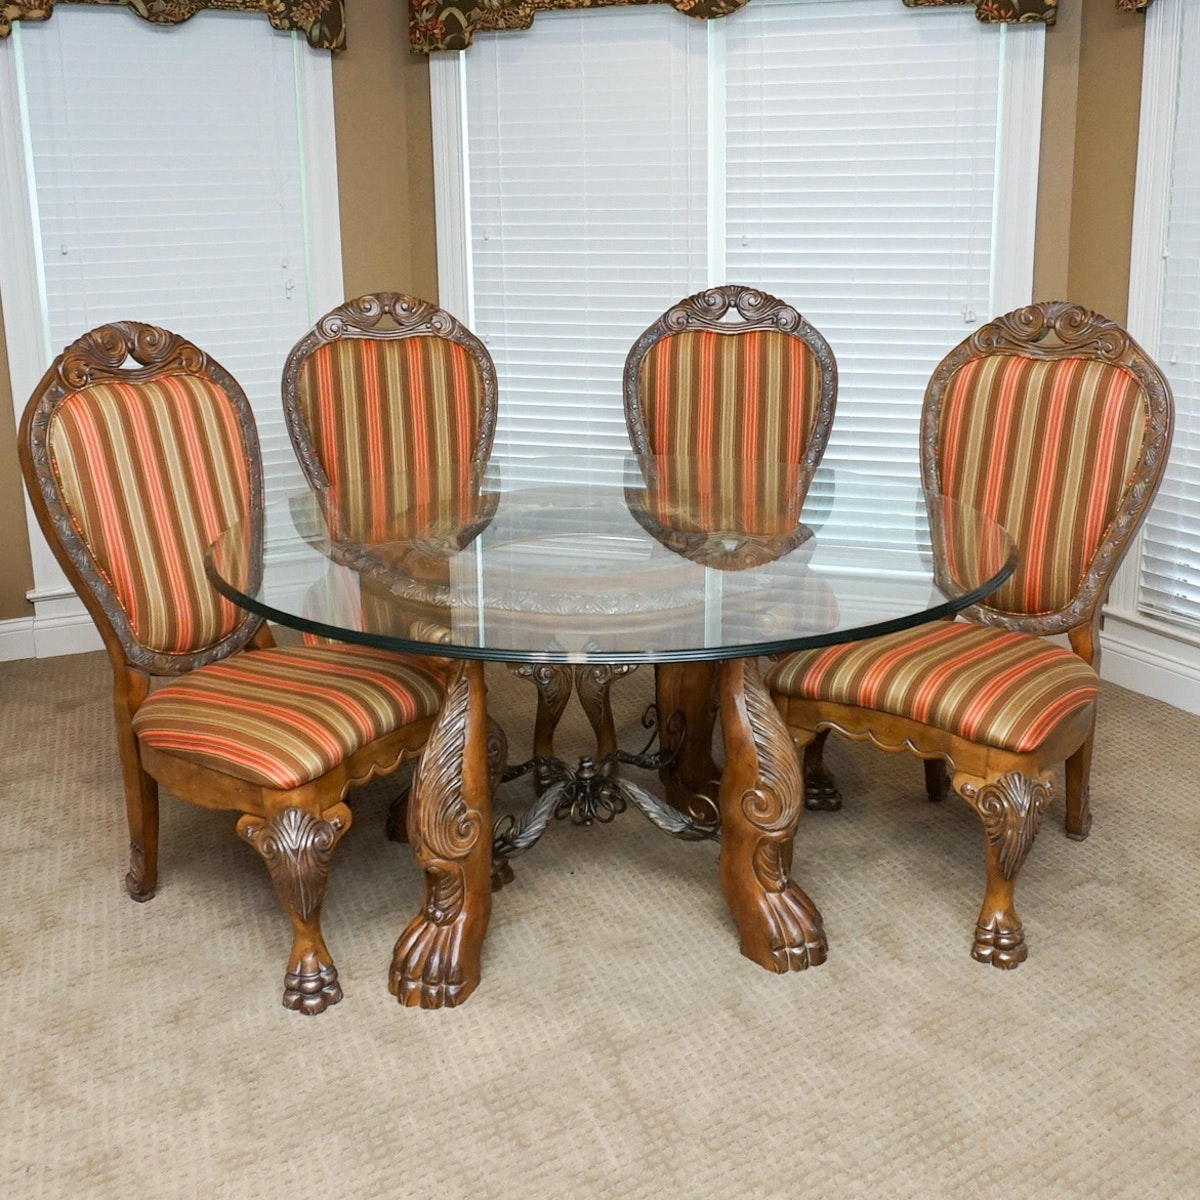 """Michael Amini Dining Room Furniture: Michael Amini """"Paradisio"""" Dining Table And Chairs By AICO Furniture : EBTH"""